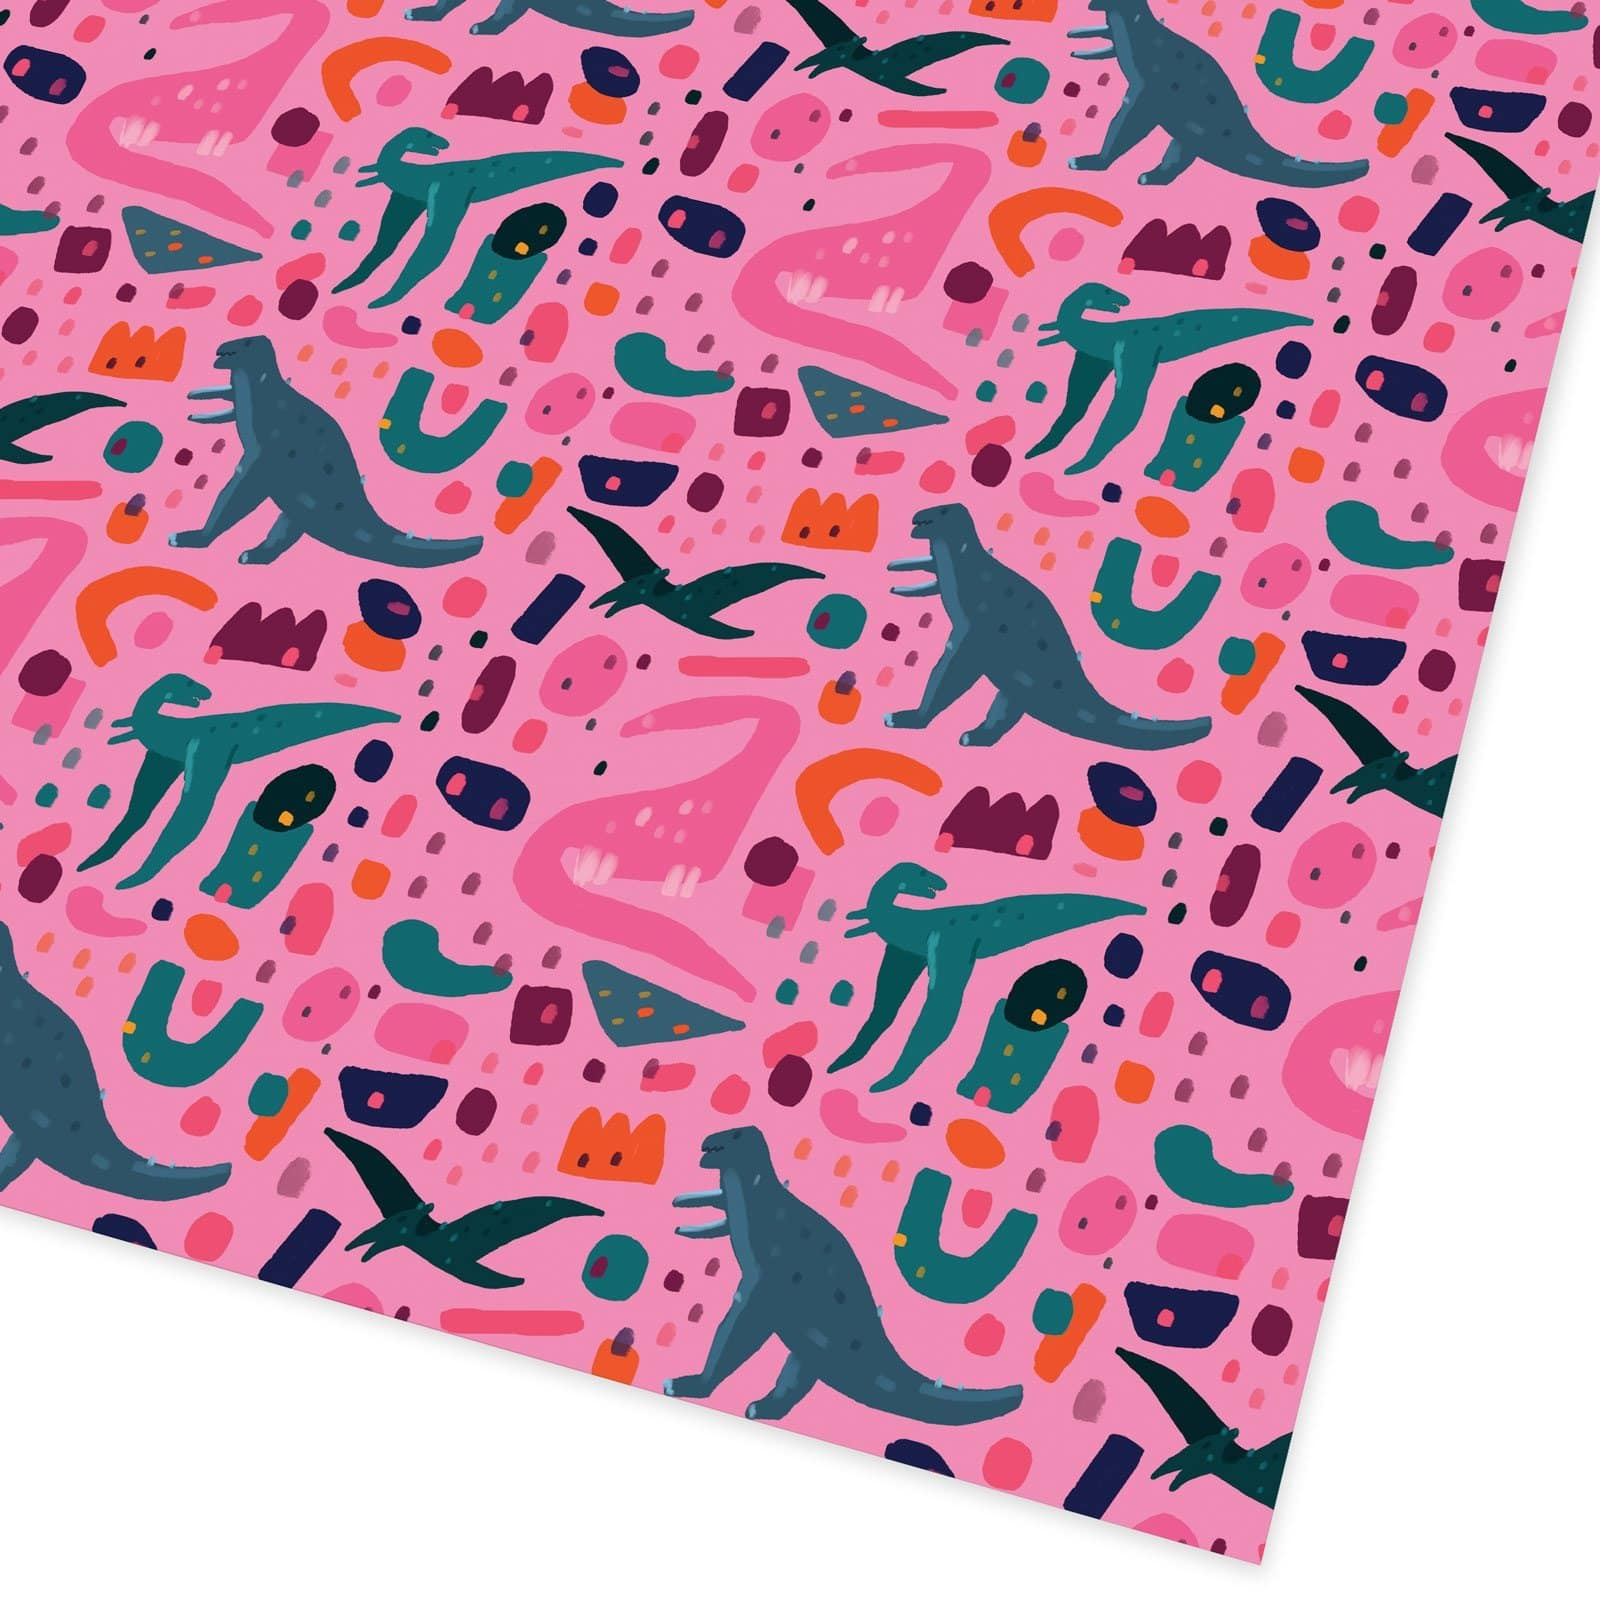 Pink gift wrap with green, blue and pink dinosaurs printed on